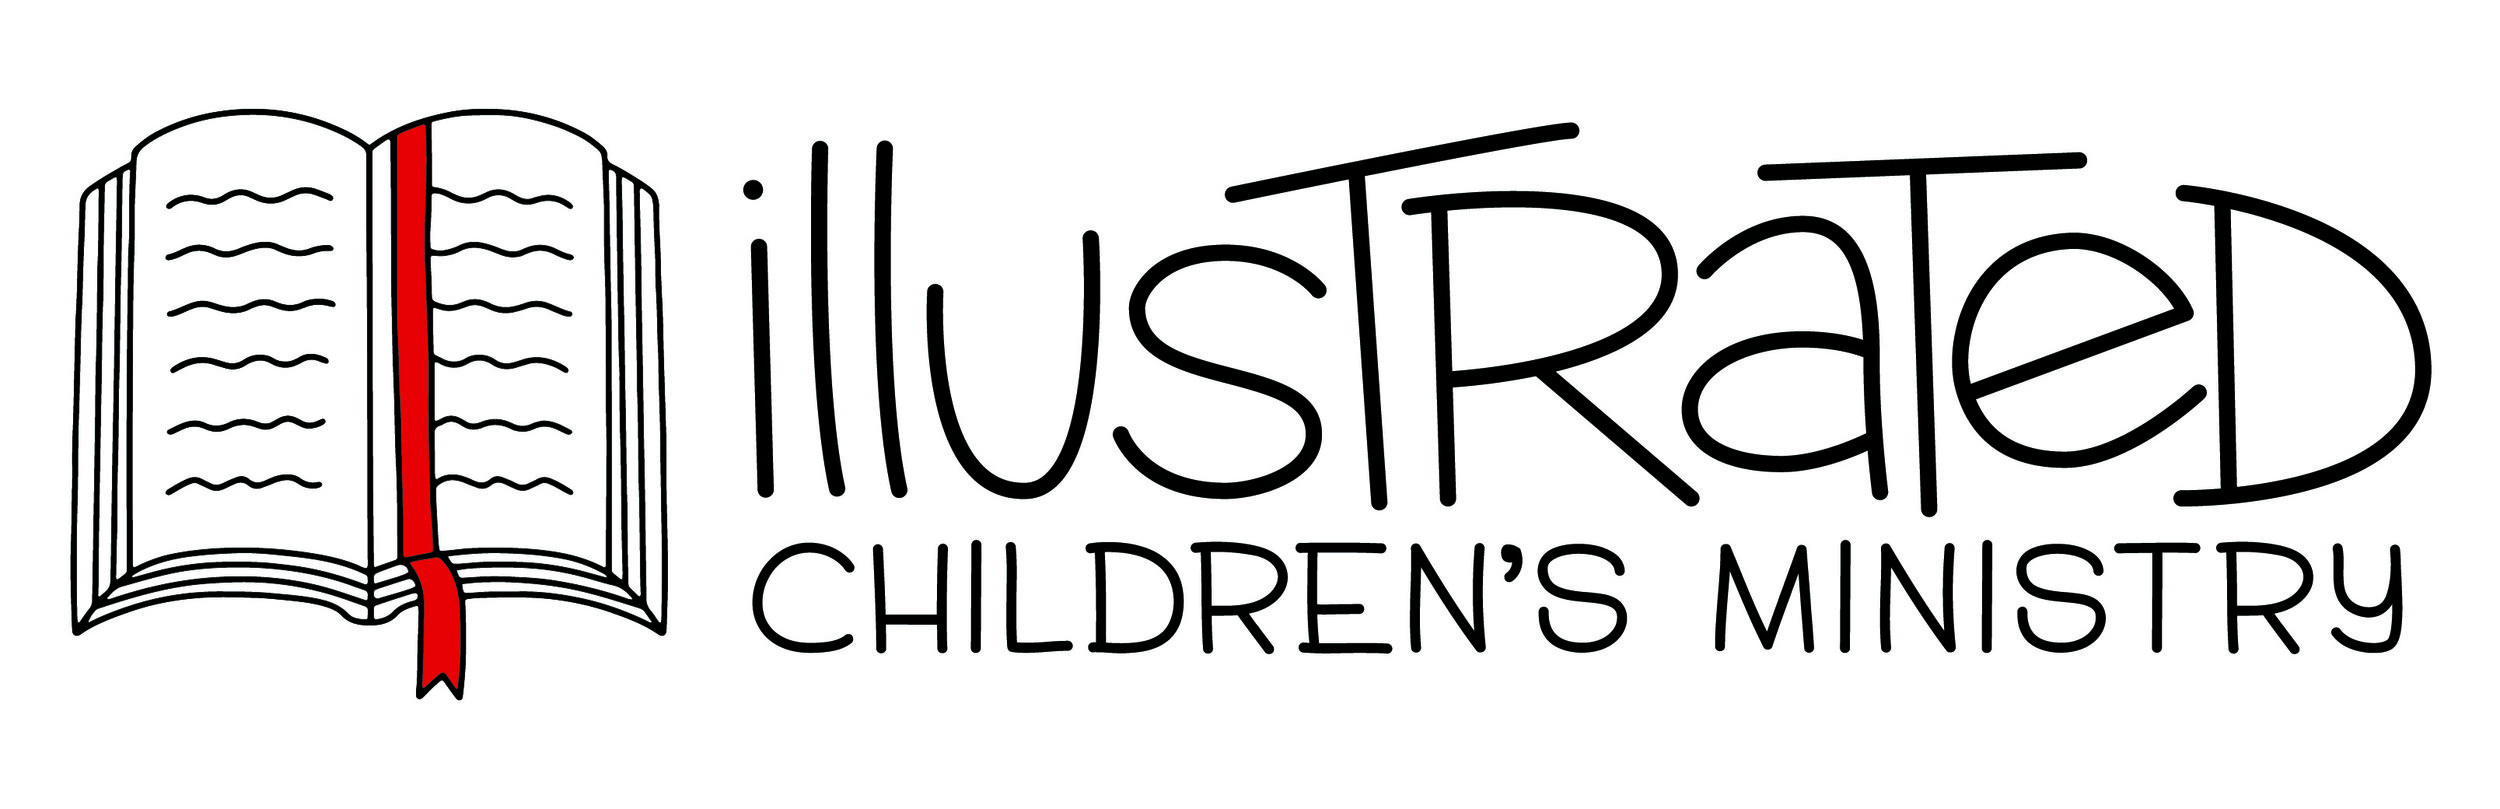 Illustrated Children's Ministry